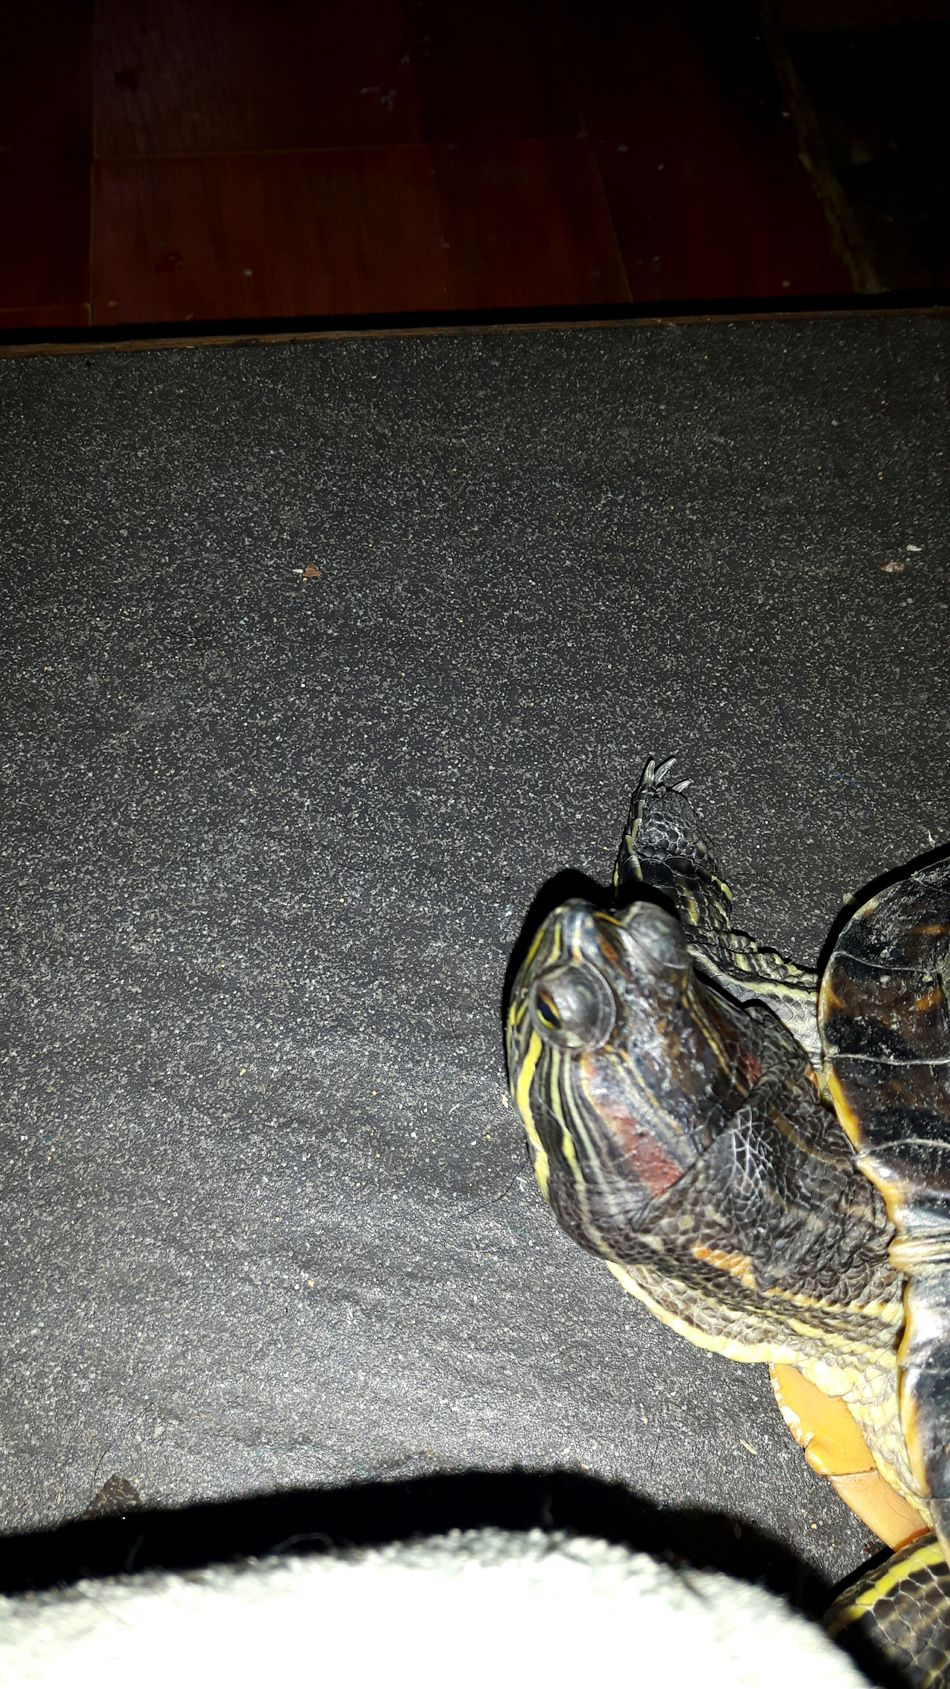 Turtle :) No People Turtle Seacreatures Animalsofthesea Animal Reptile WaterCreature Creatures Coldblooded Water Sea Green Yellow Redearedslider Pet Freedom Love Exotic Close-up Animaleye